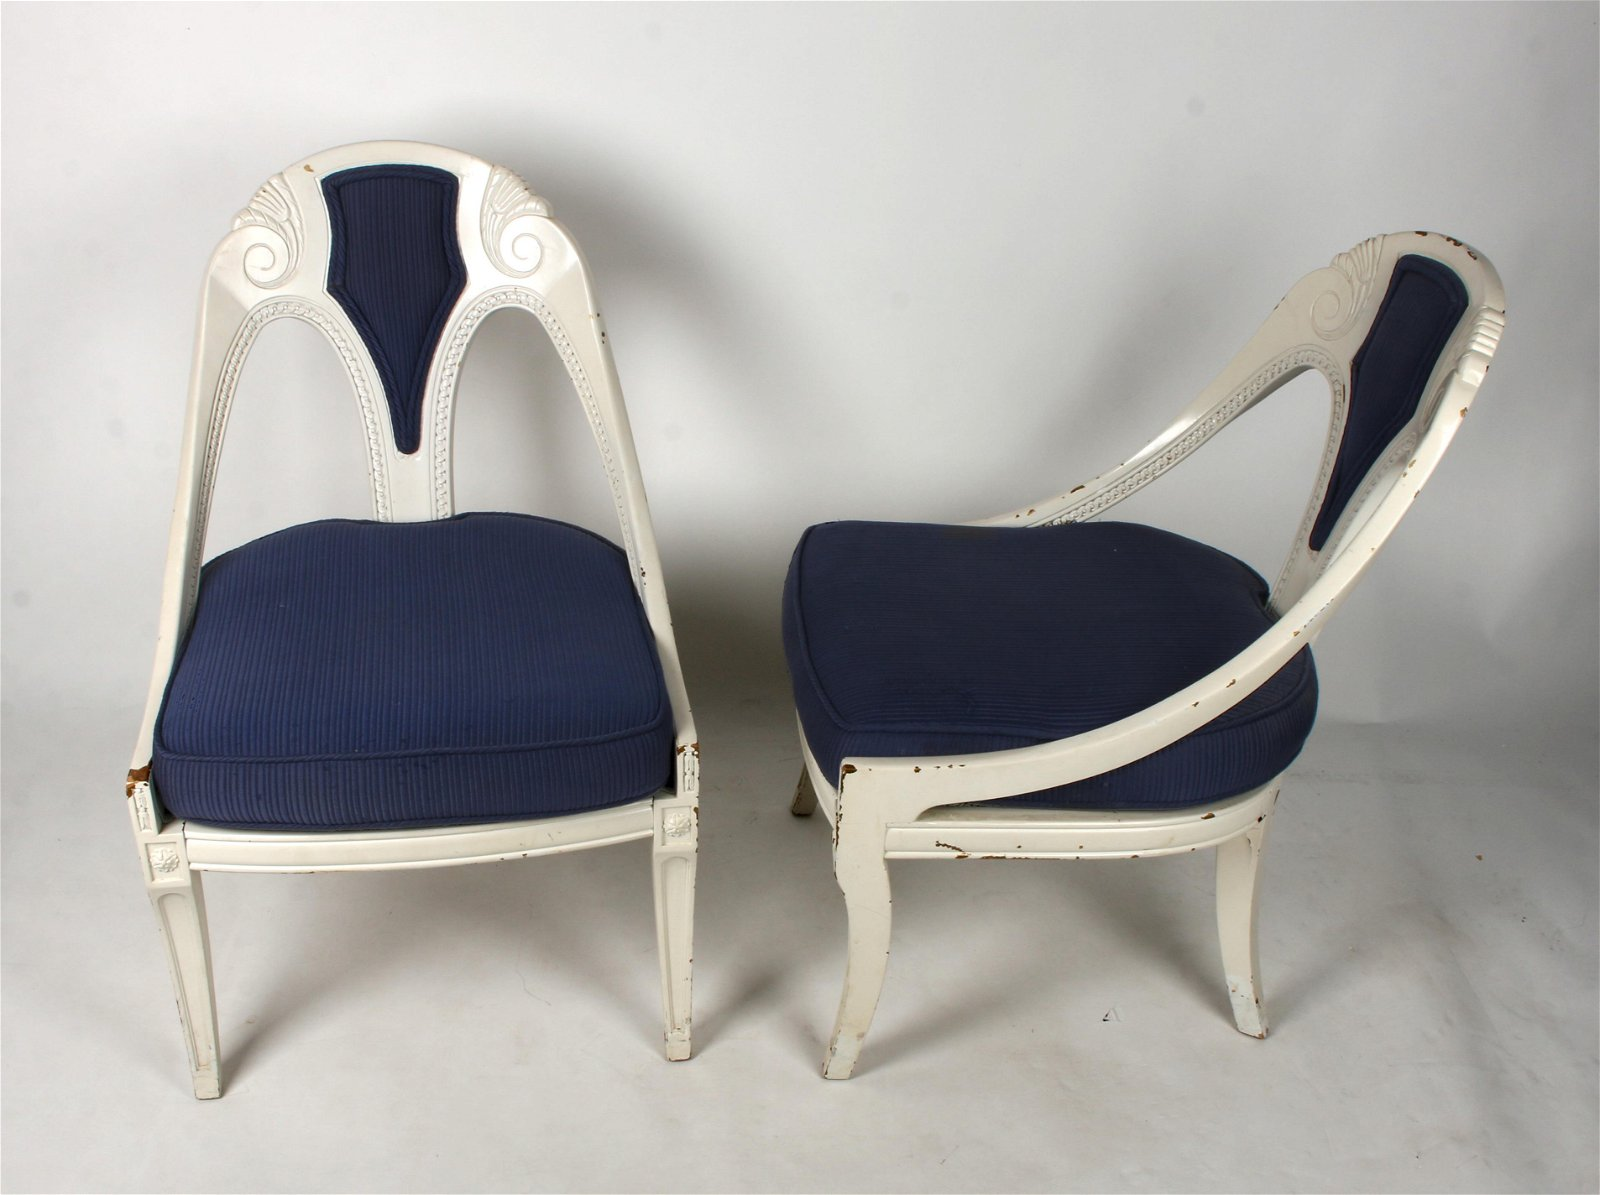 PAIR HOLLYWOOD REGENCY BLUE & WHITE CHAIRS